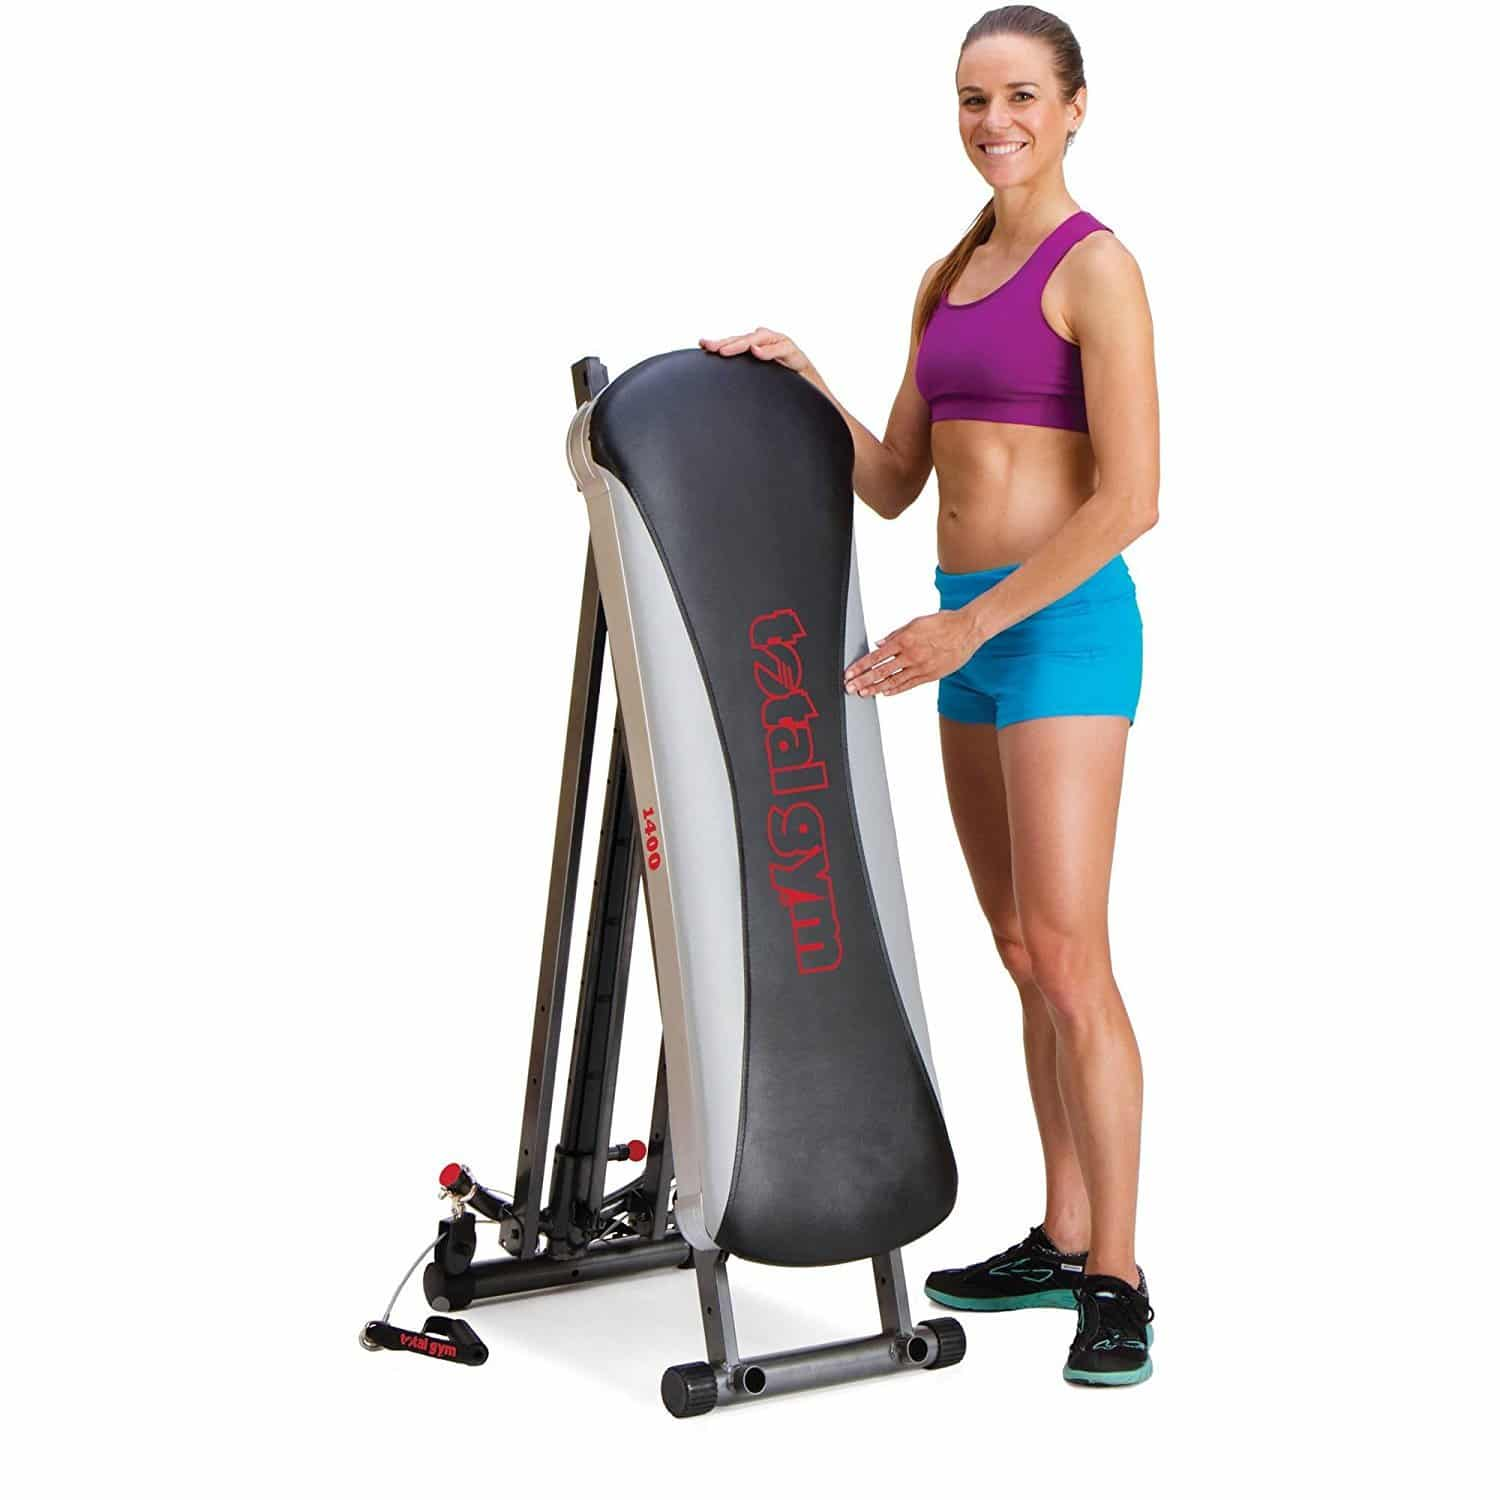 Total gym reviews- 7 best RATED machines and their accessories 4